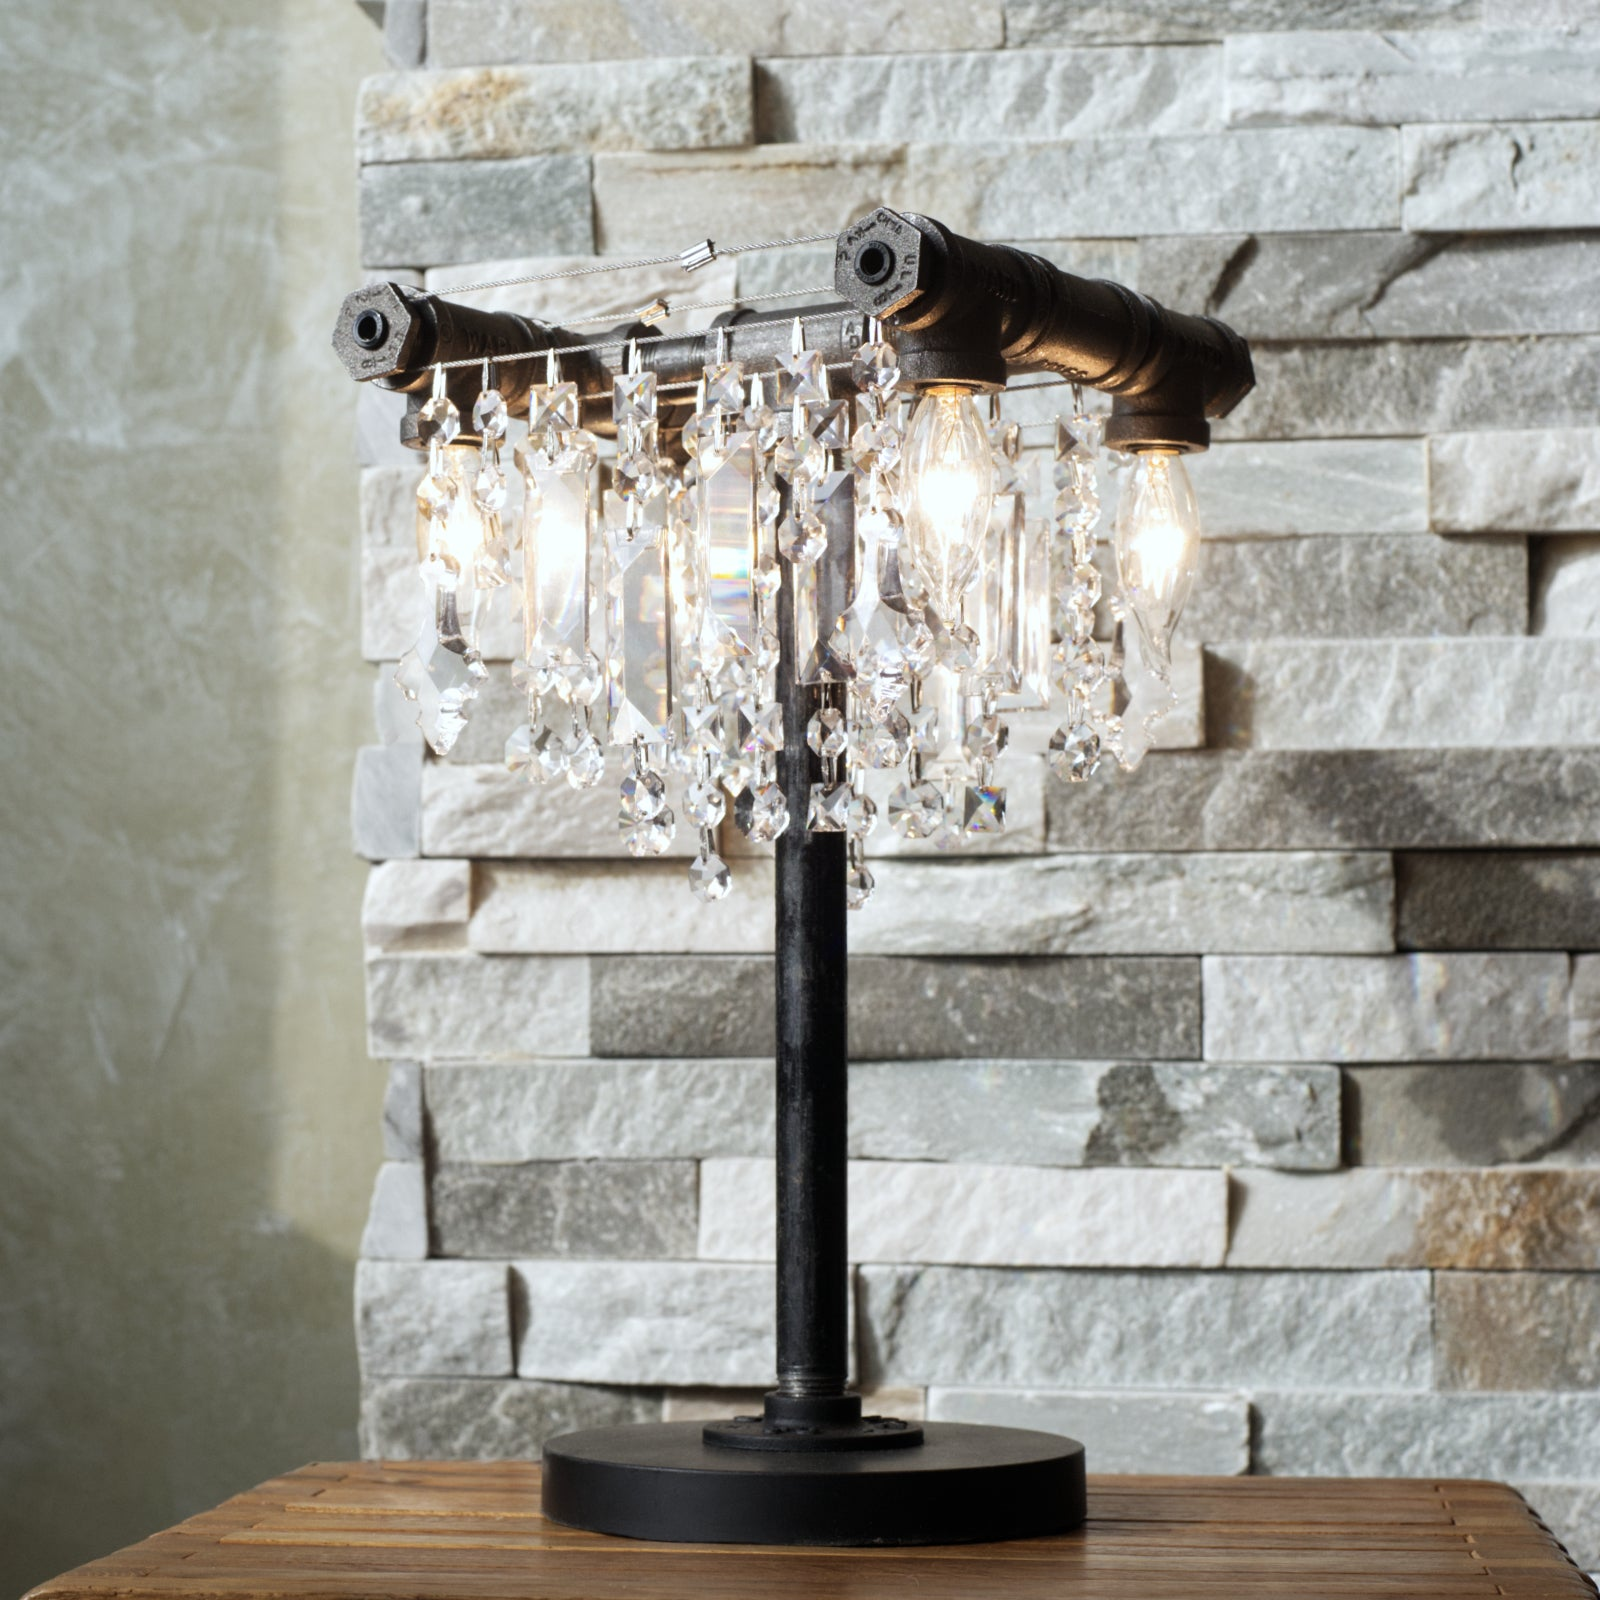 The Tribeca Table Lamp